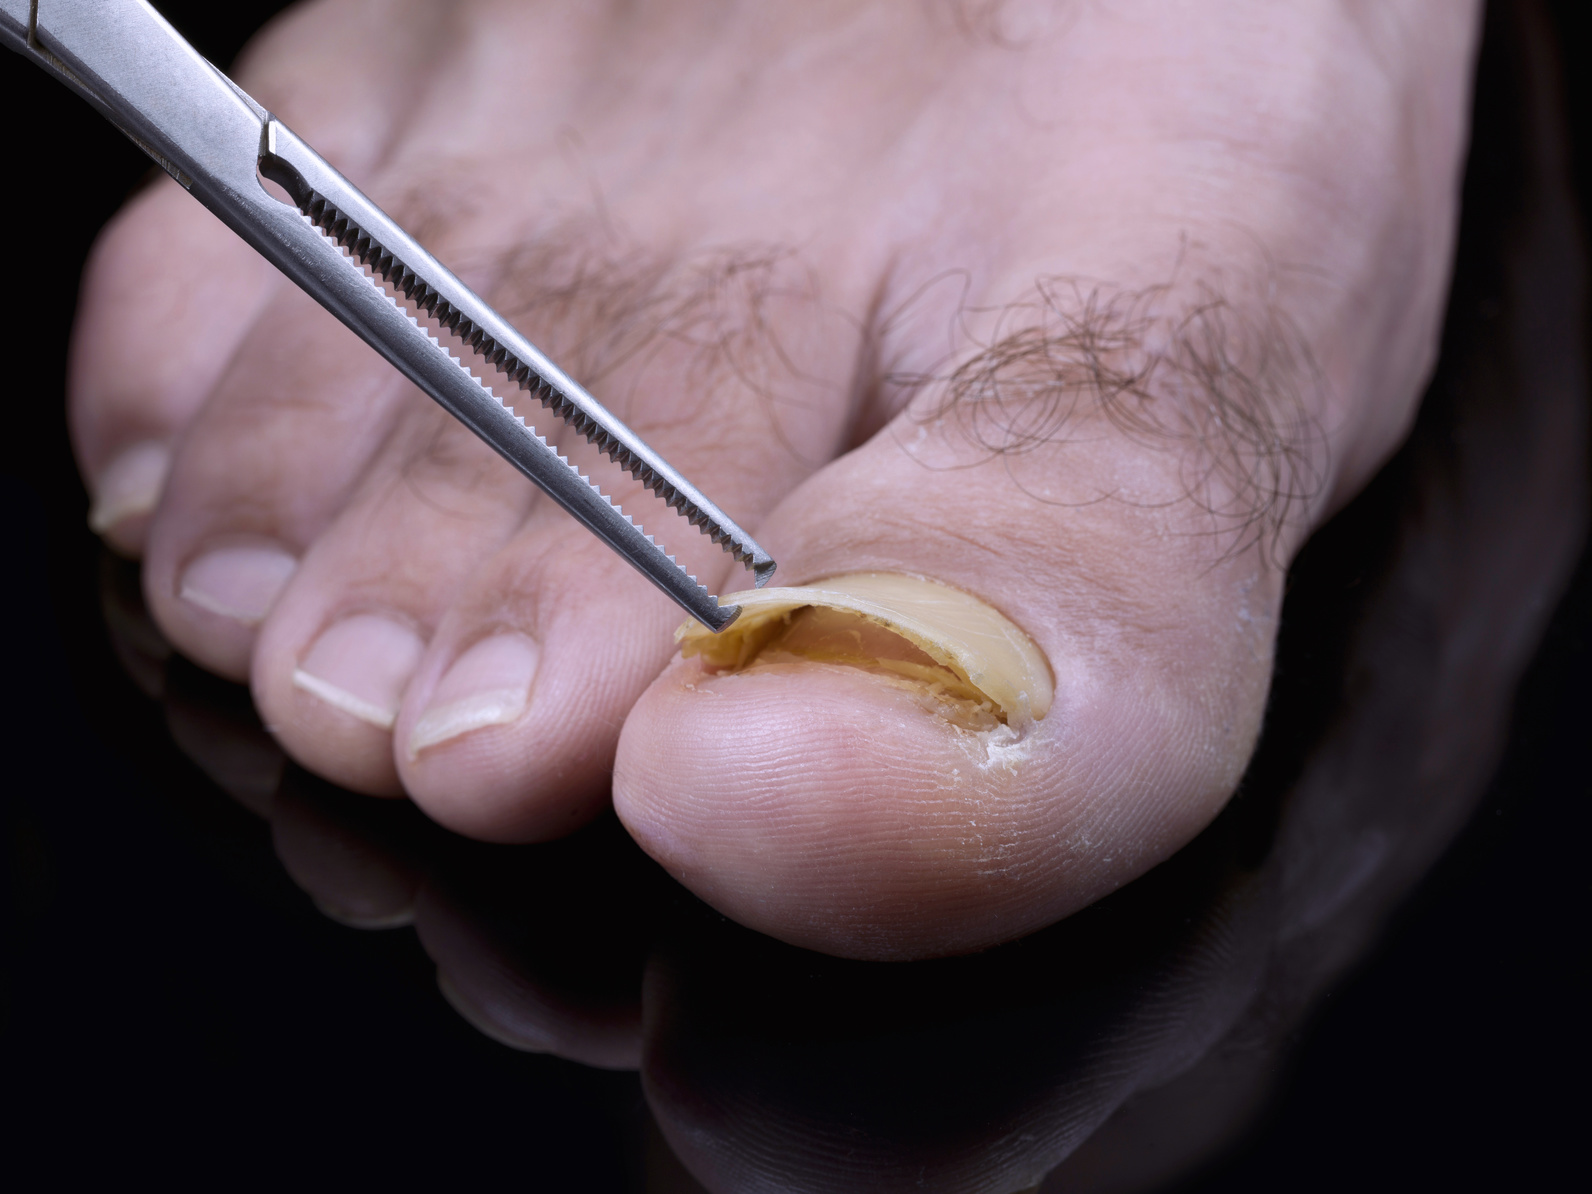 Toenail fungus treatment - Atlanta Podiatrists: Atlanta Foot and ...